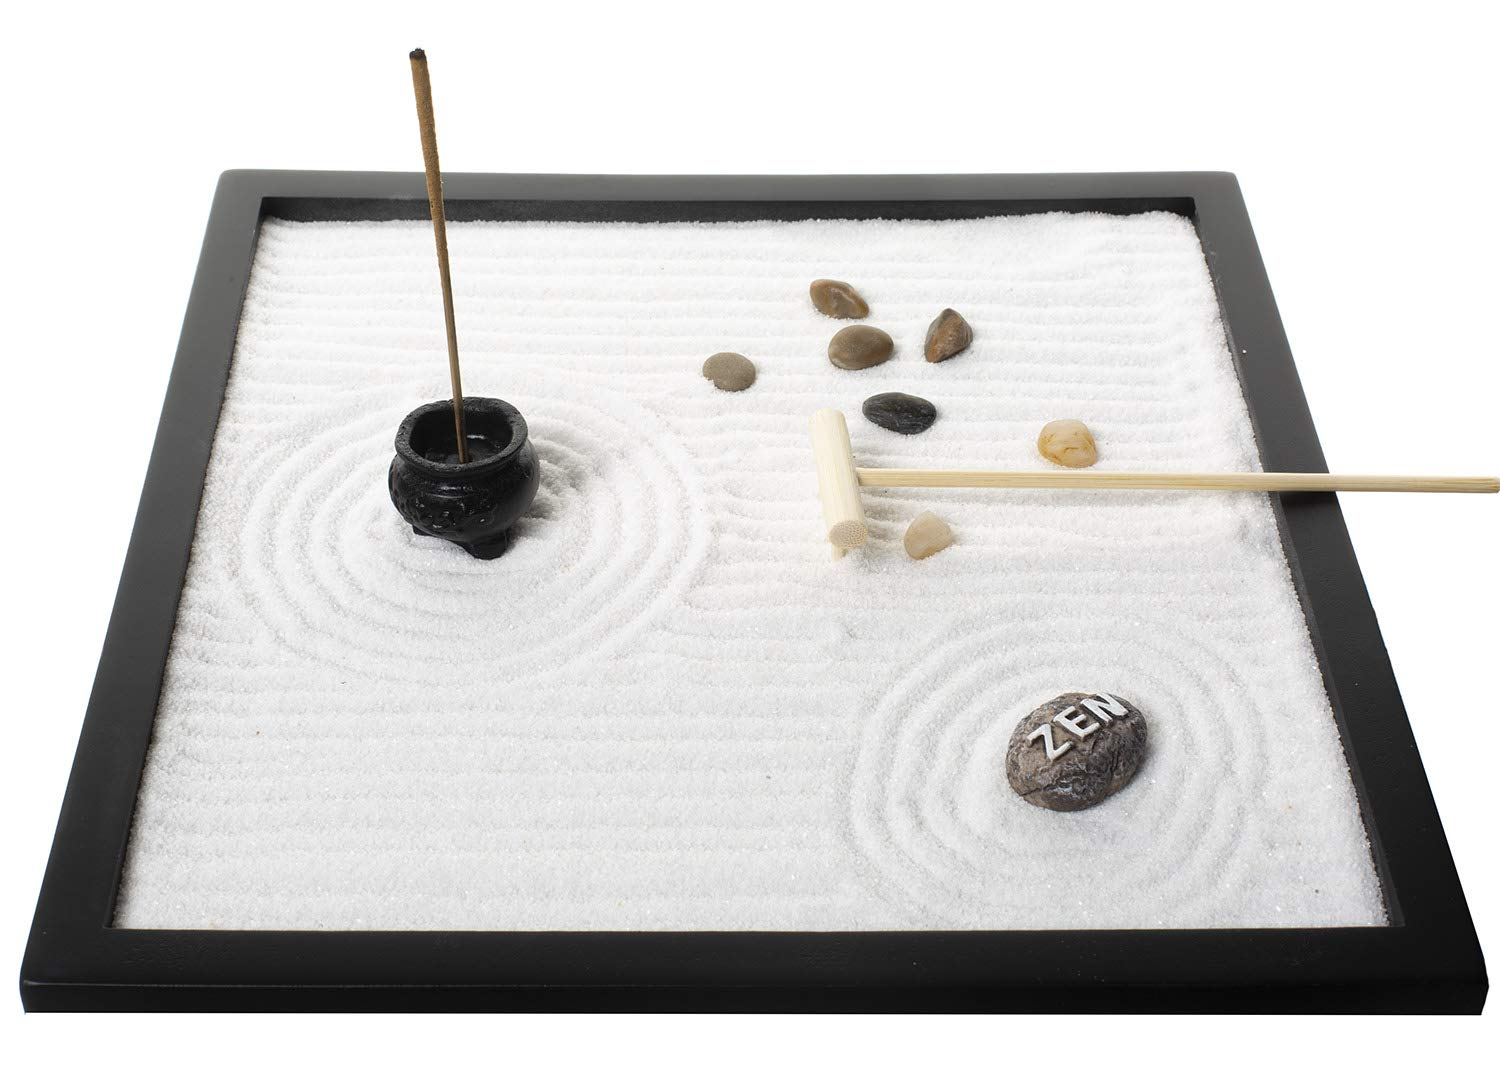 Tabletop Sand Zen Garden with Rocks and rake for Your Desk from Tatum & Shea by Tatum & Shea (Image #4)